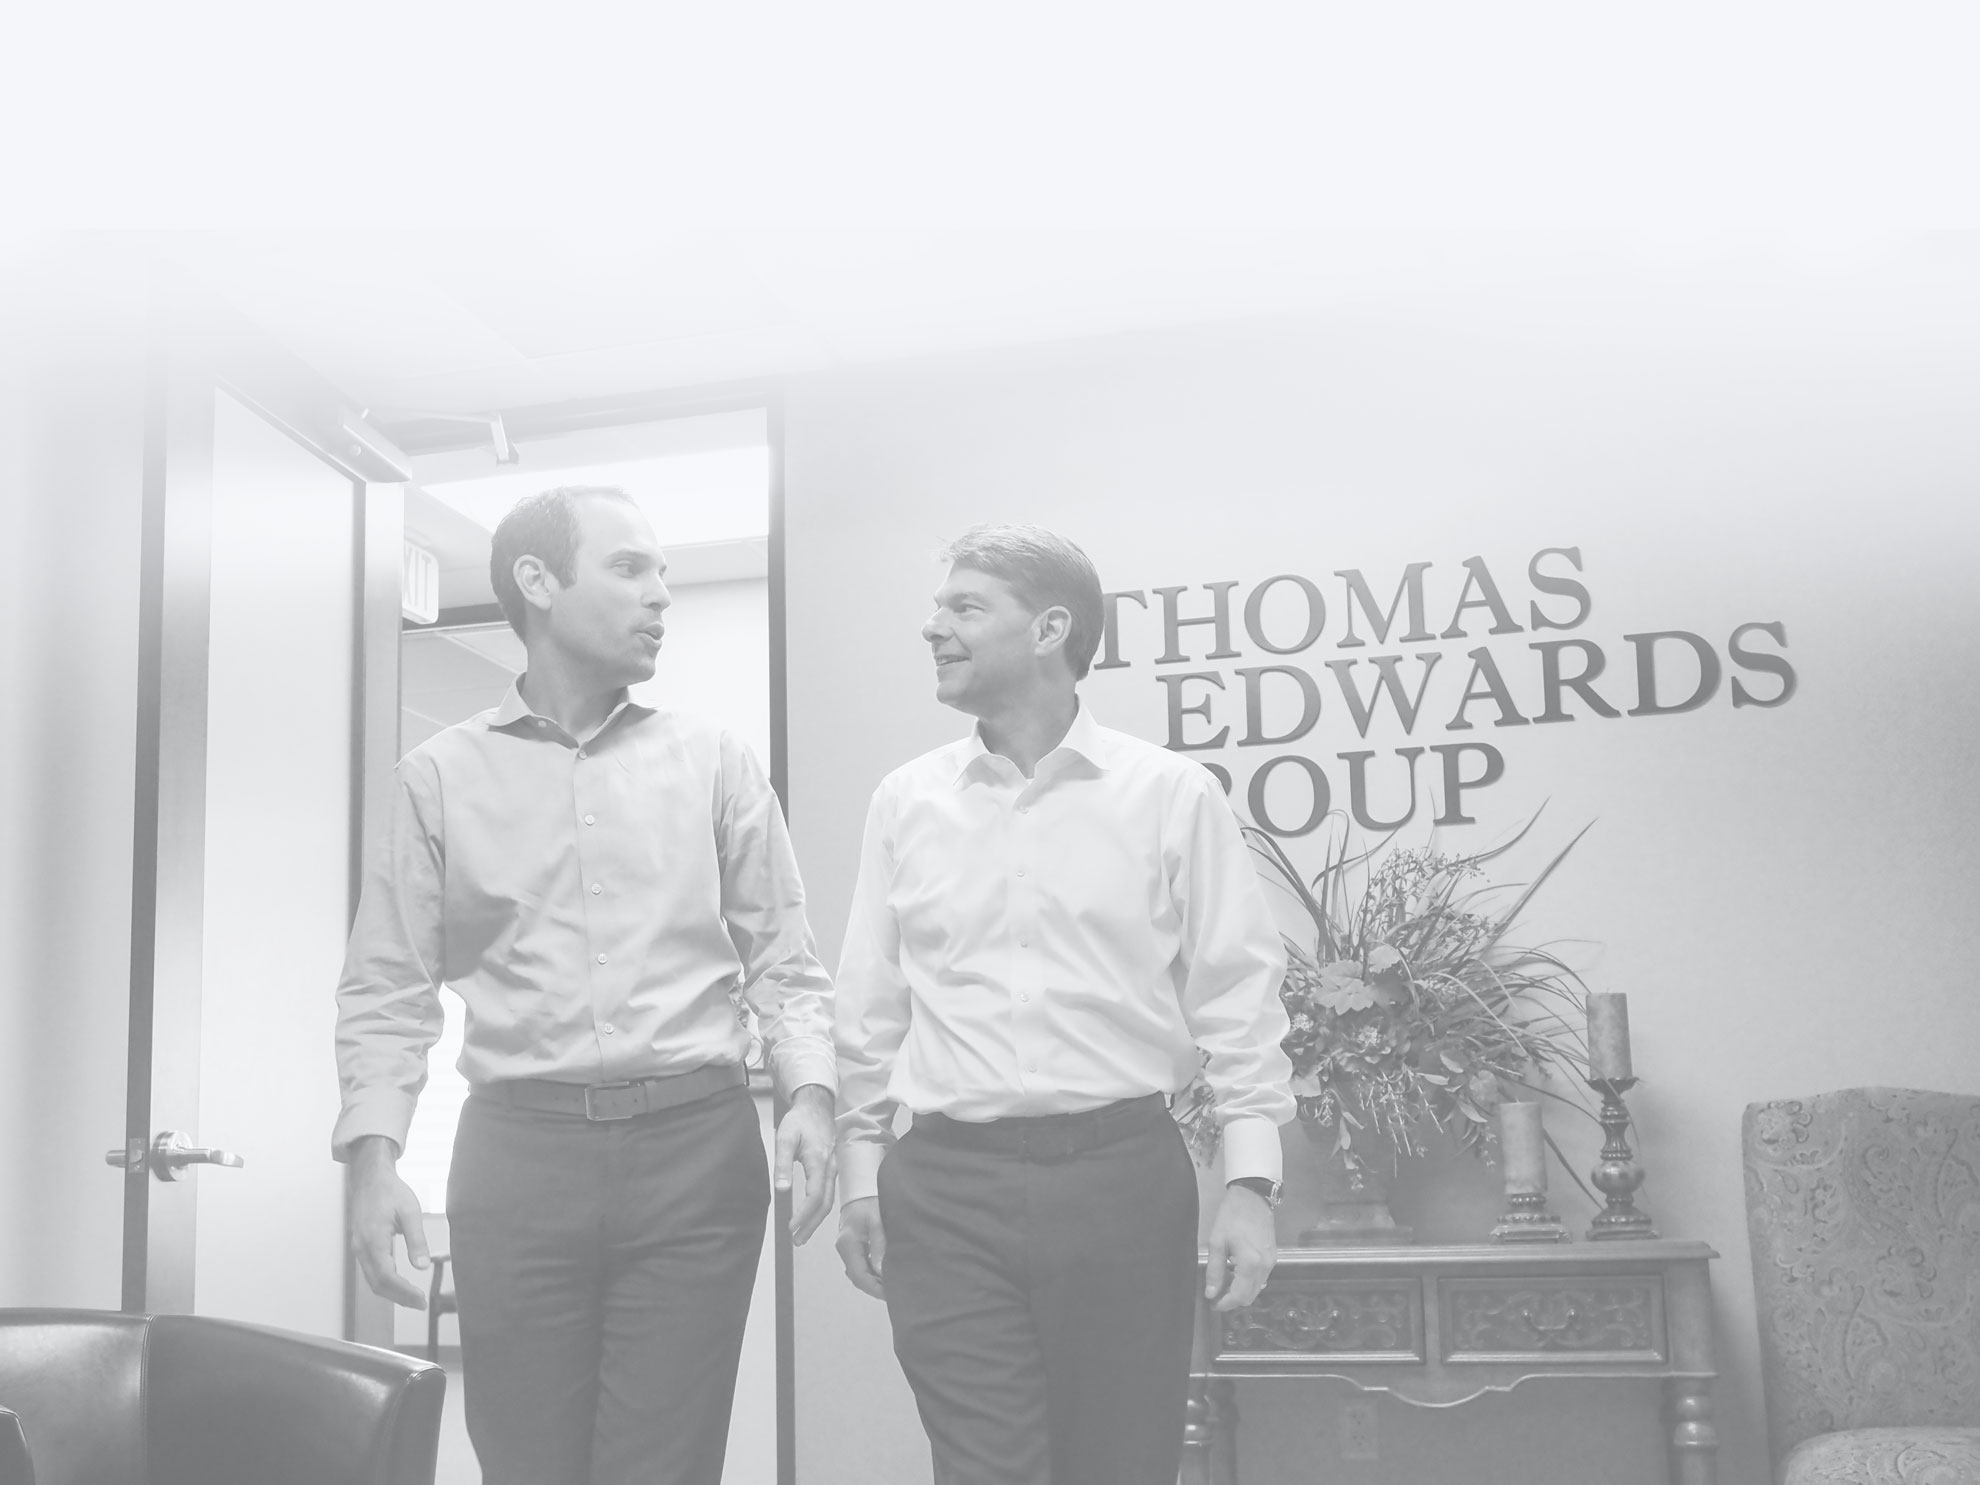 two professional men walking and talking in front of thomas edwards sign in office setting